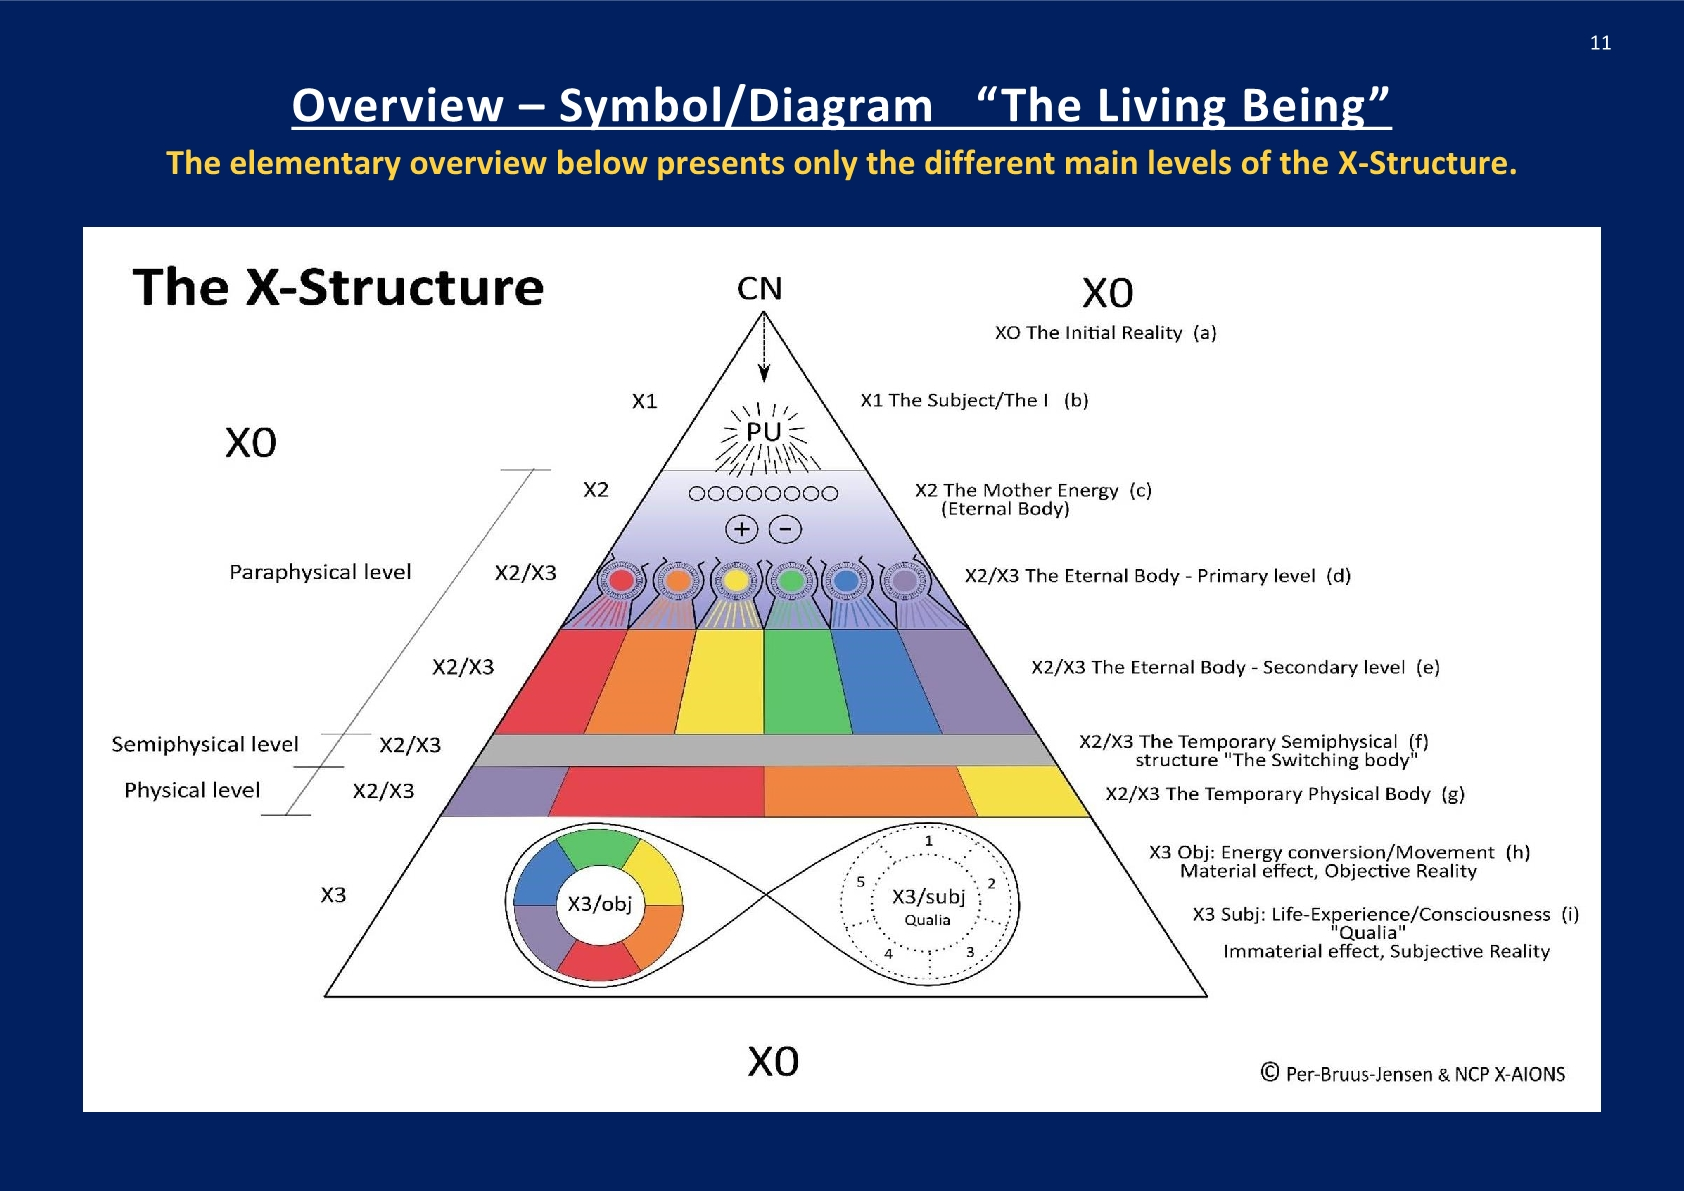 Symbol- Overview, The Living Being; NCP X-AIONS